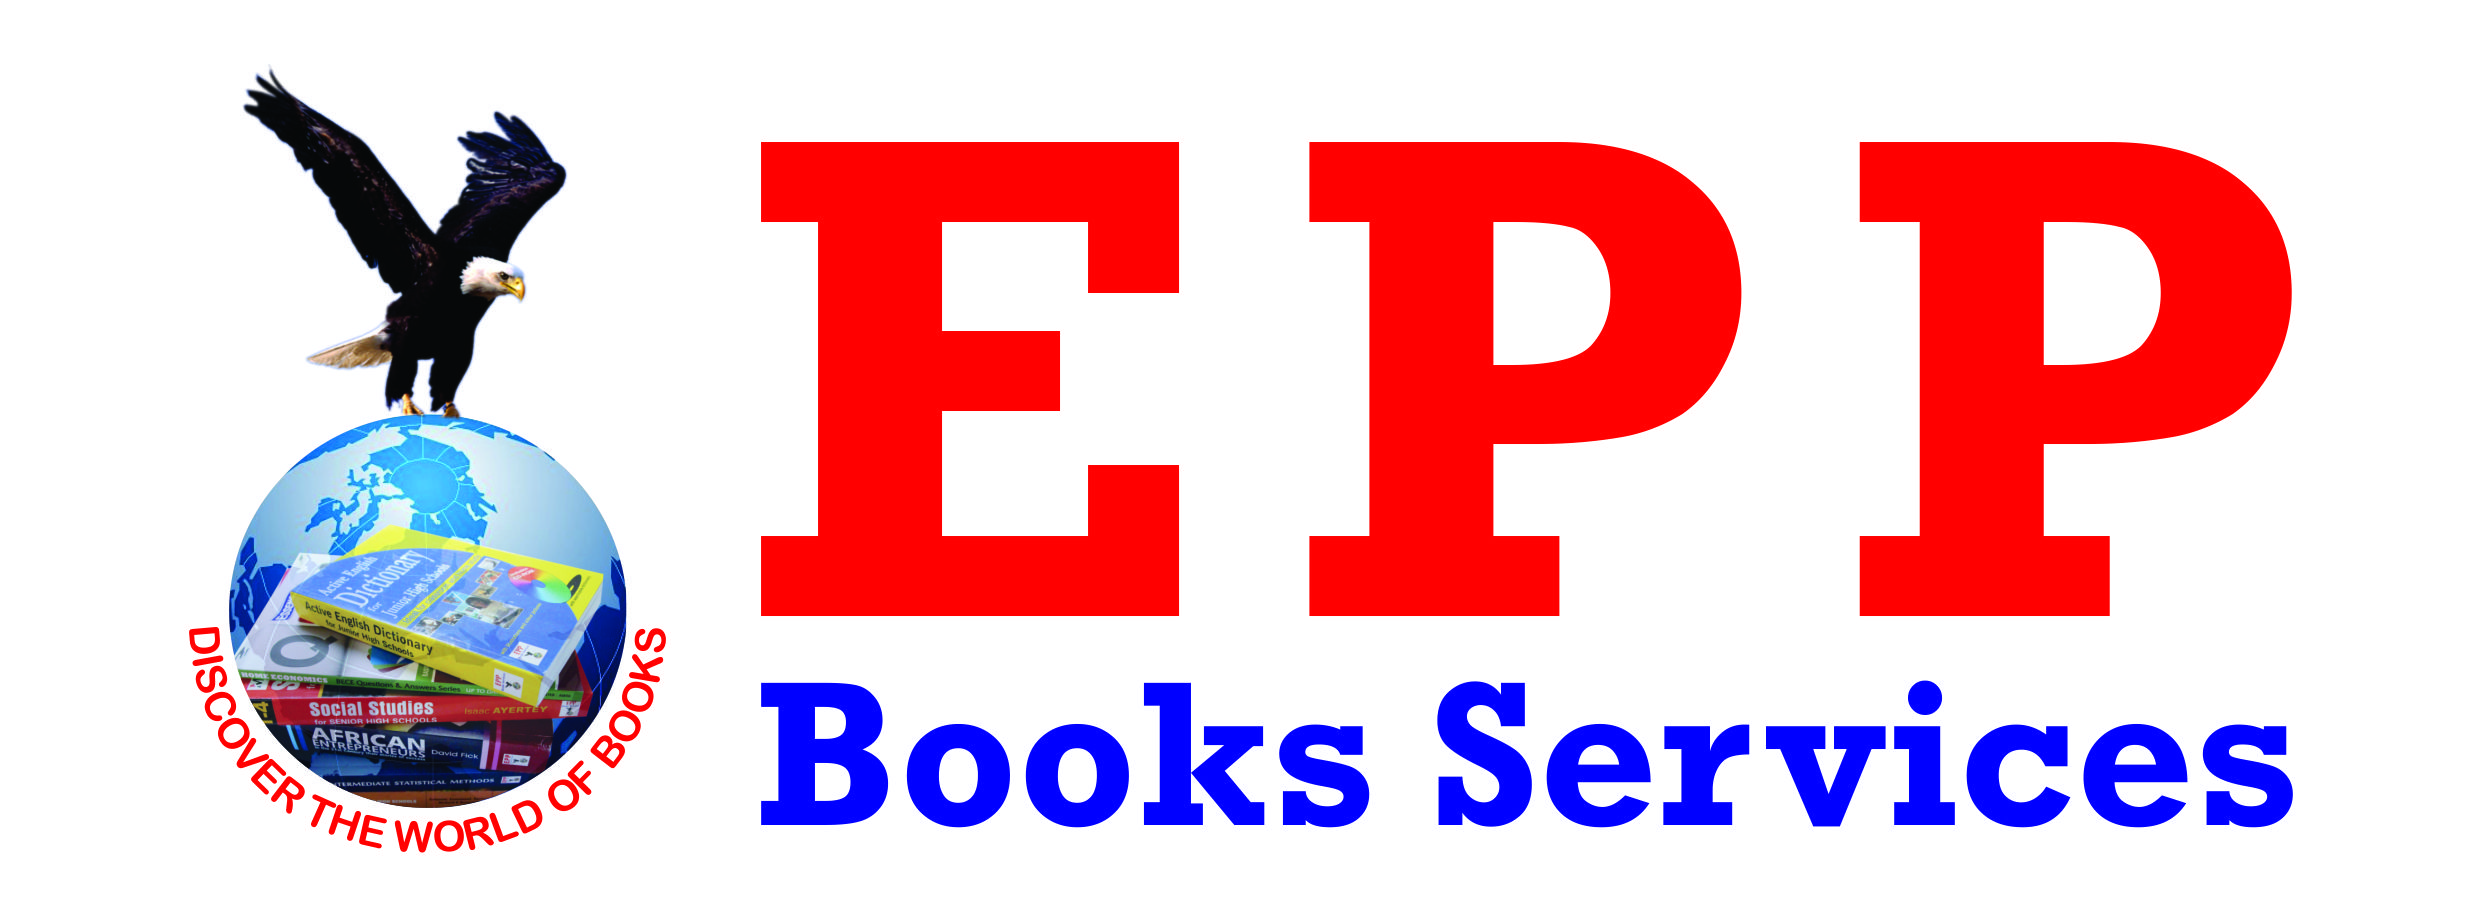 EPP Books services logo